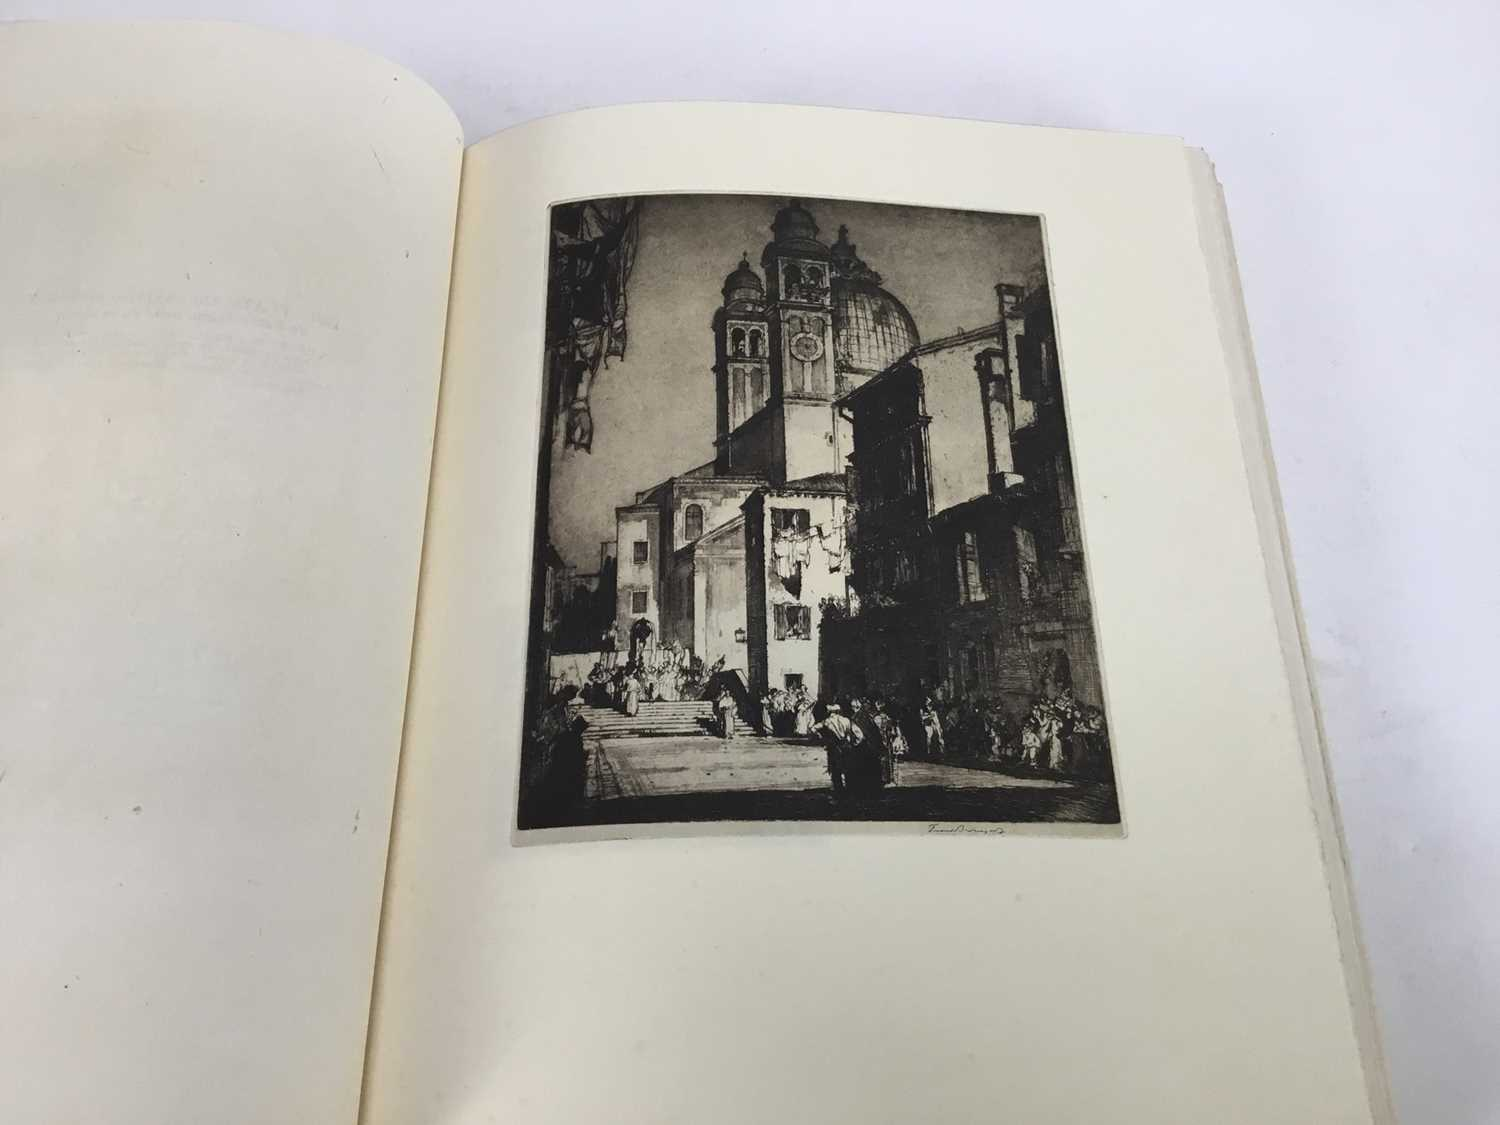 Book - The Etchings of Frank Brangwyn, R.A. A Catalogue Raisonne By W. Gaunt, limited edition 10/125 - Image 8 of 8